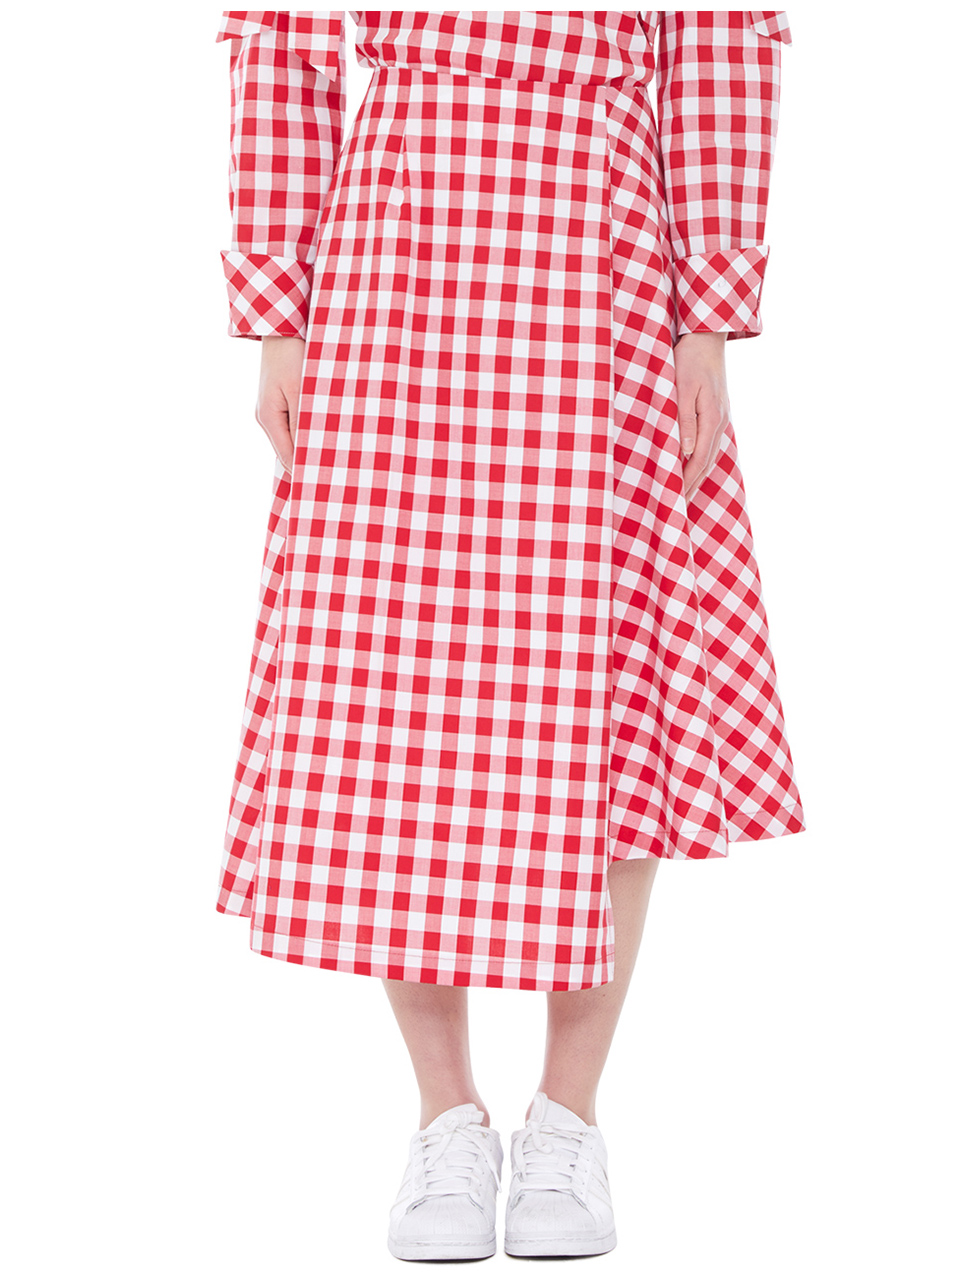 unbalanced gingham skirts - red